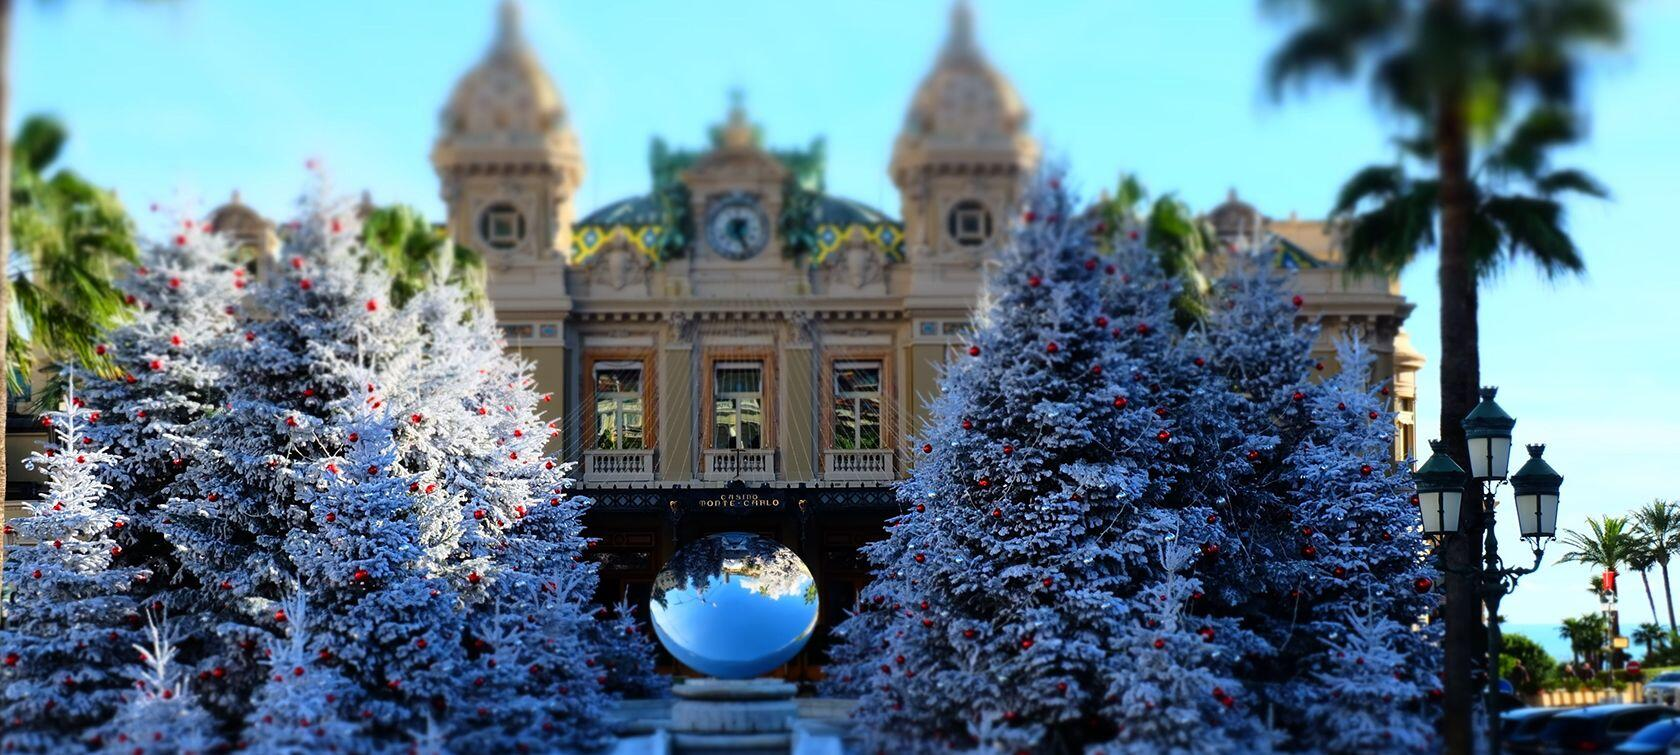 Monaco Winter Photo AdobeStock_128284943